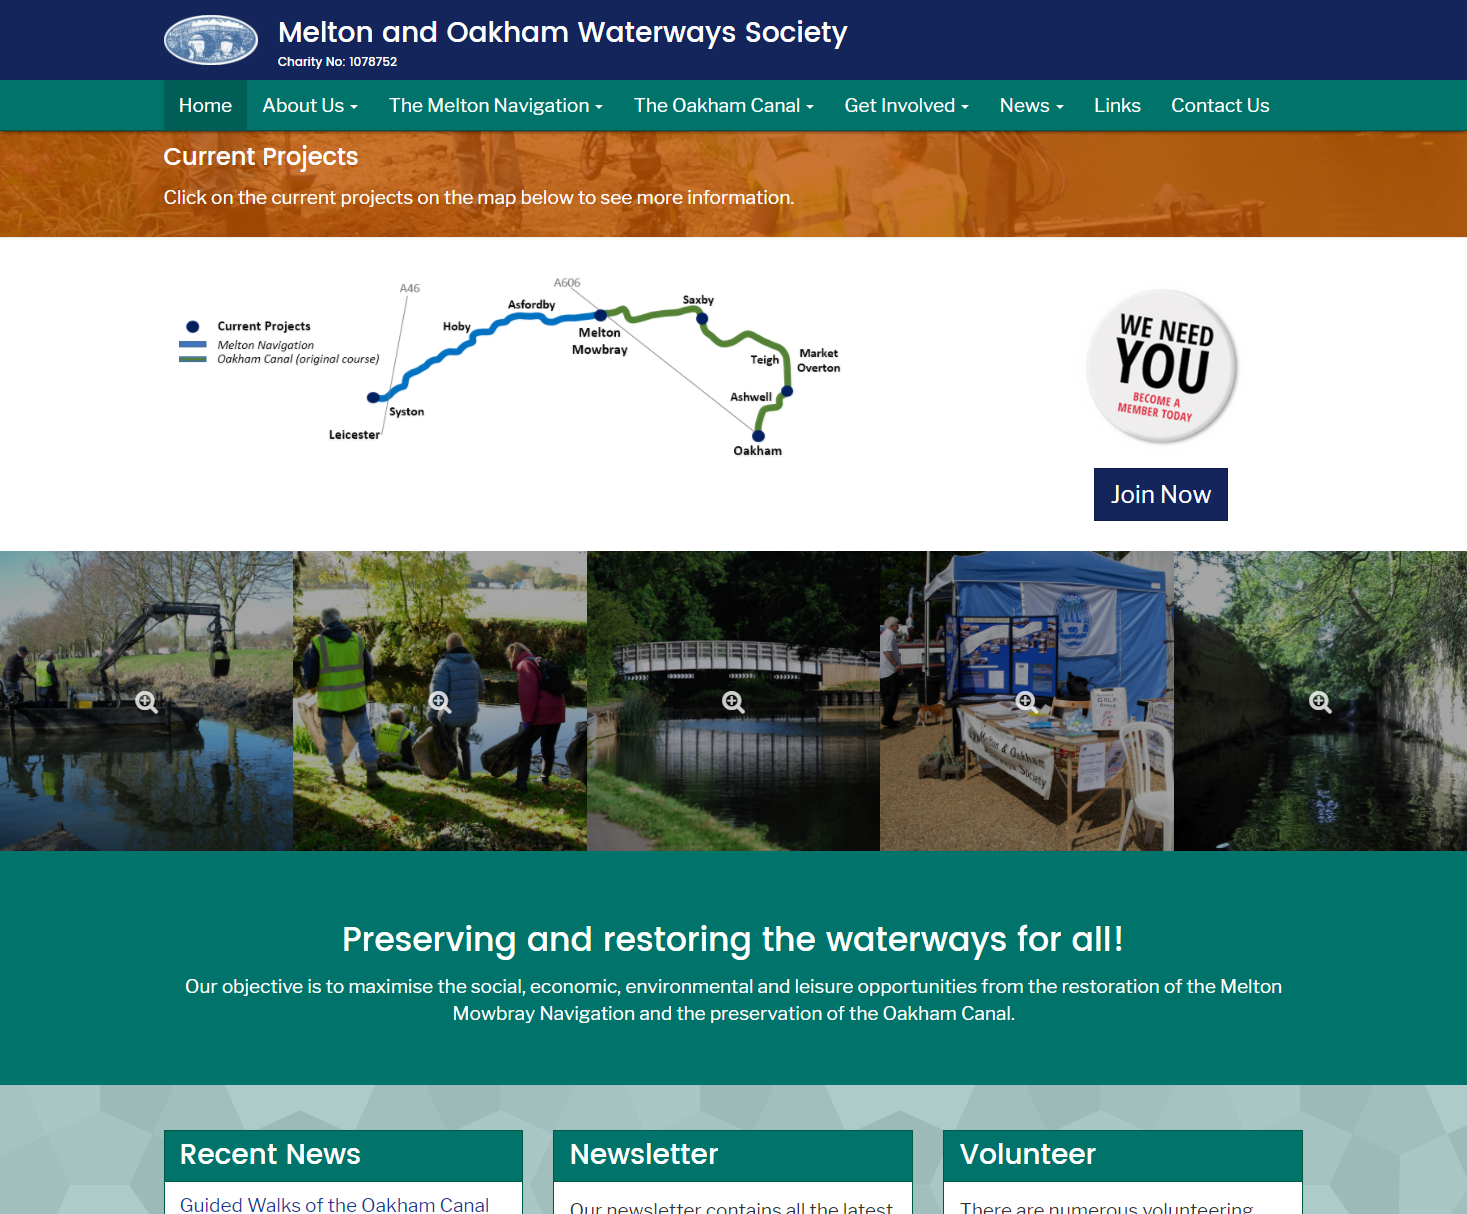 Melton and Oakham Waterways Society